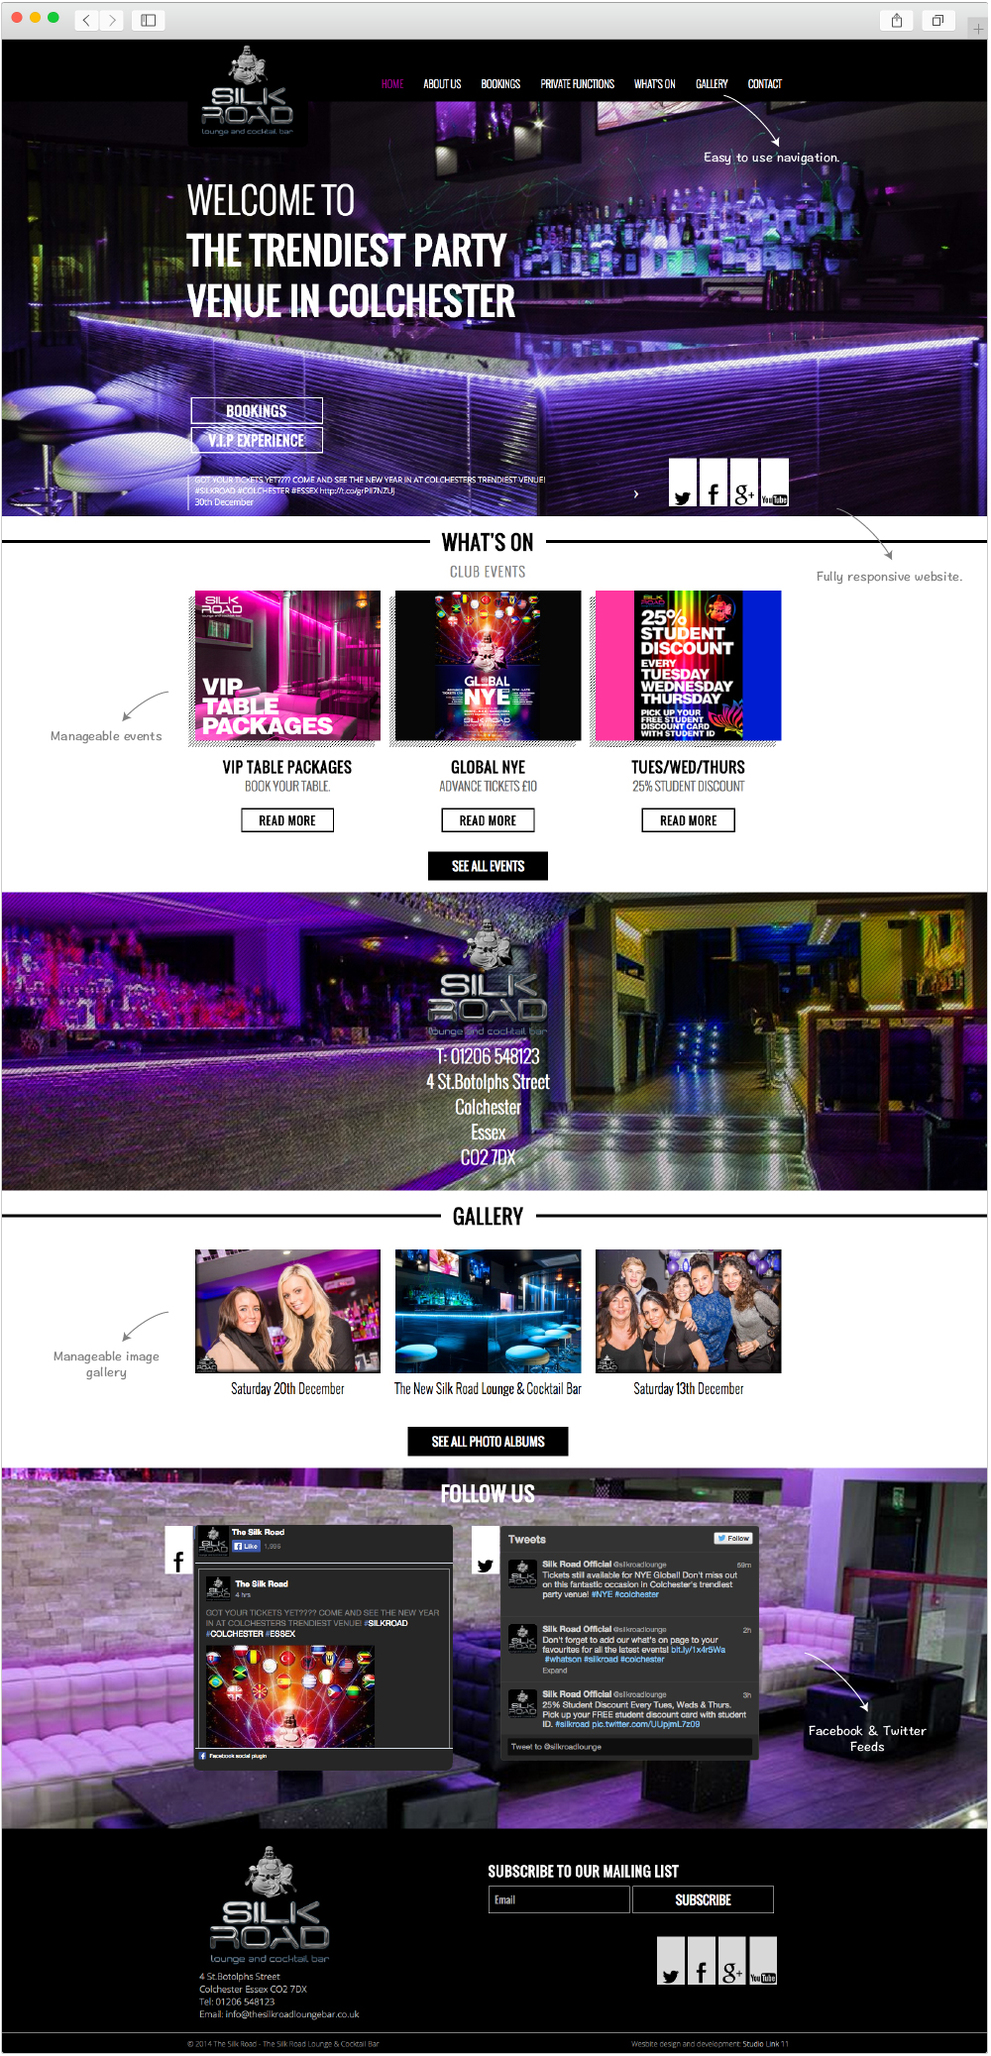 Silk Road Colchester home page design by Studio Link 11